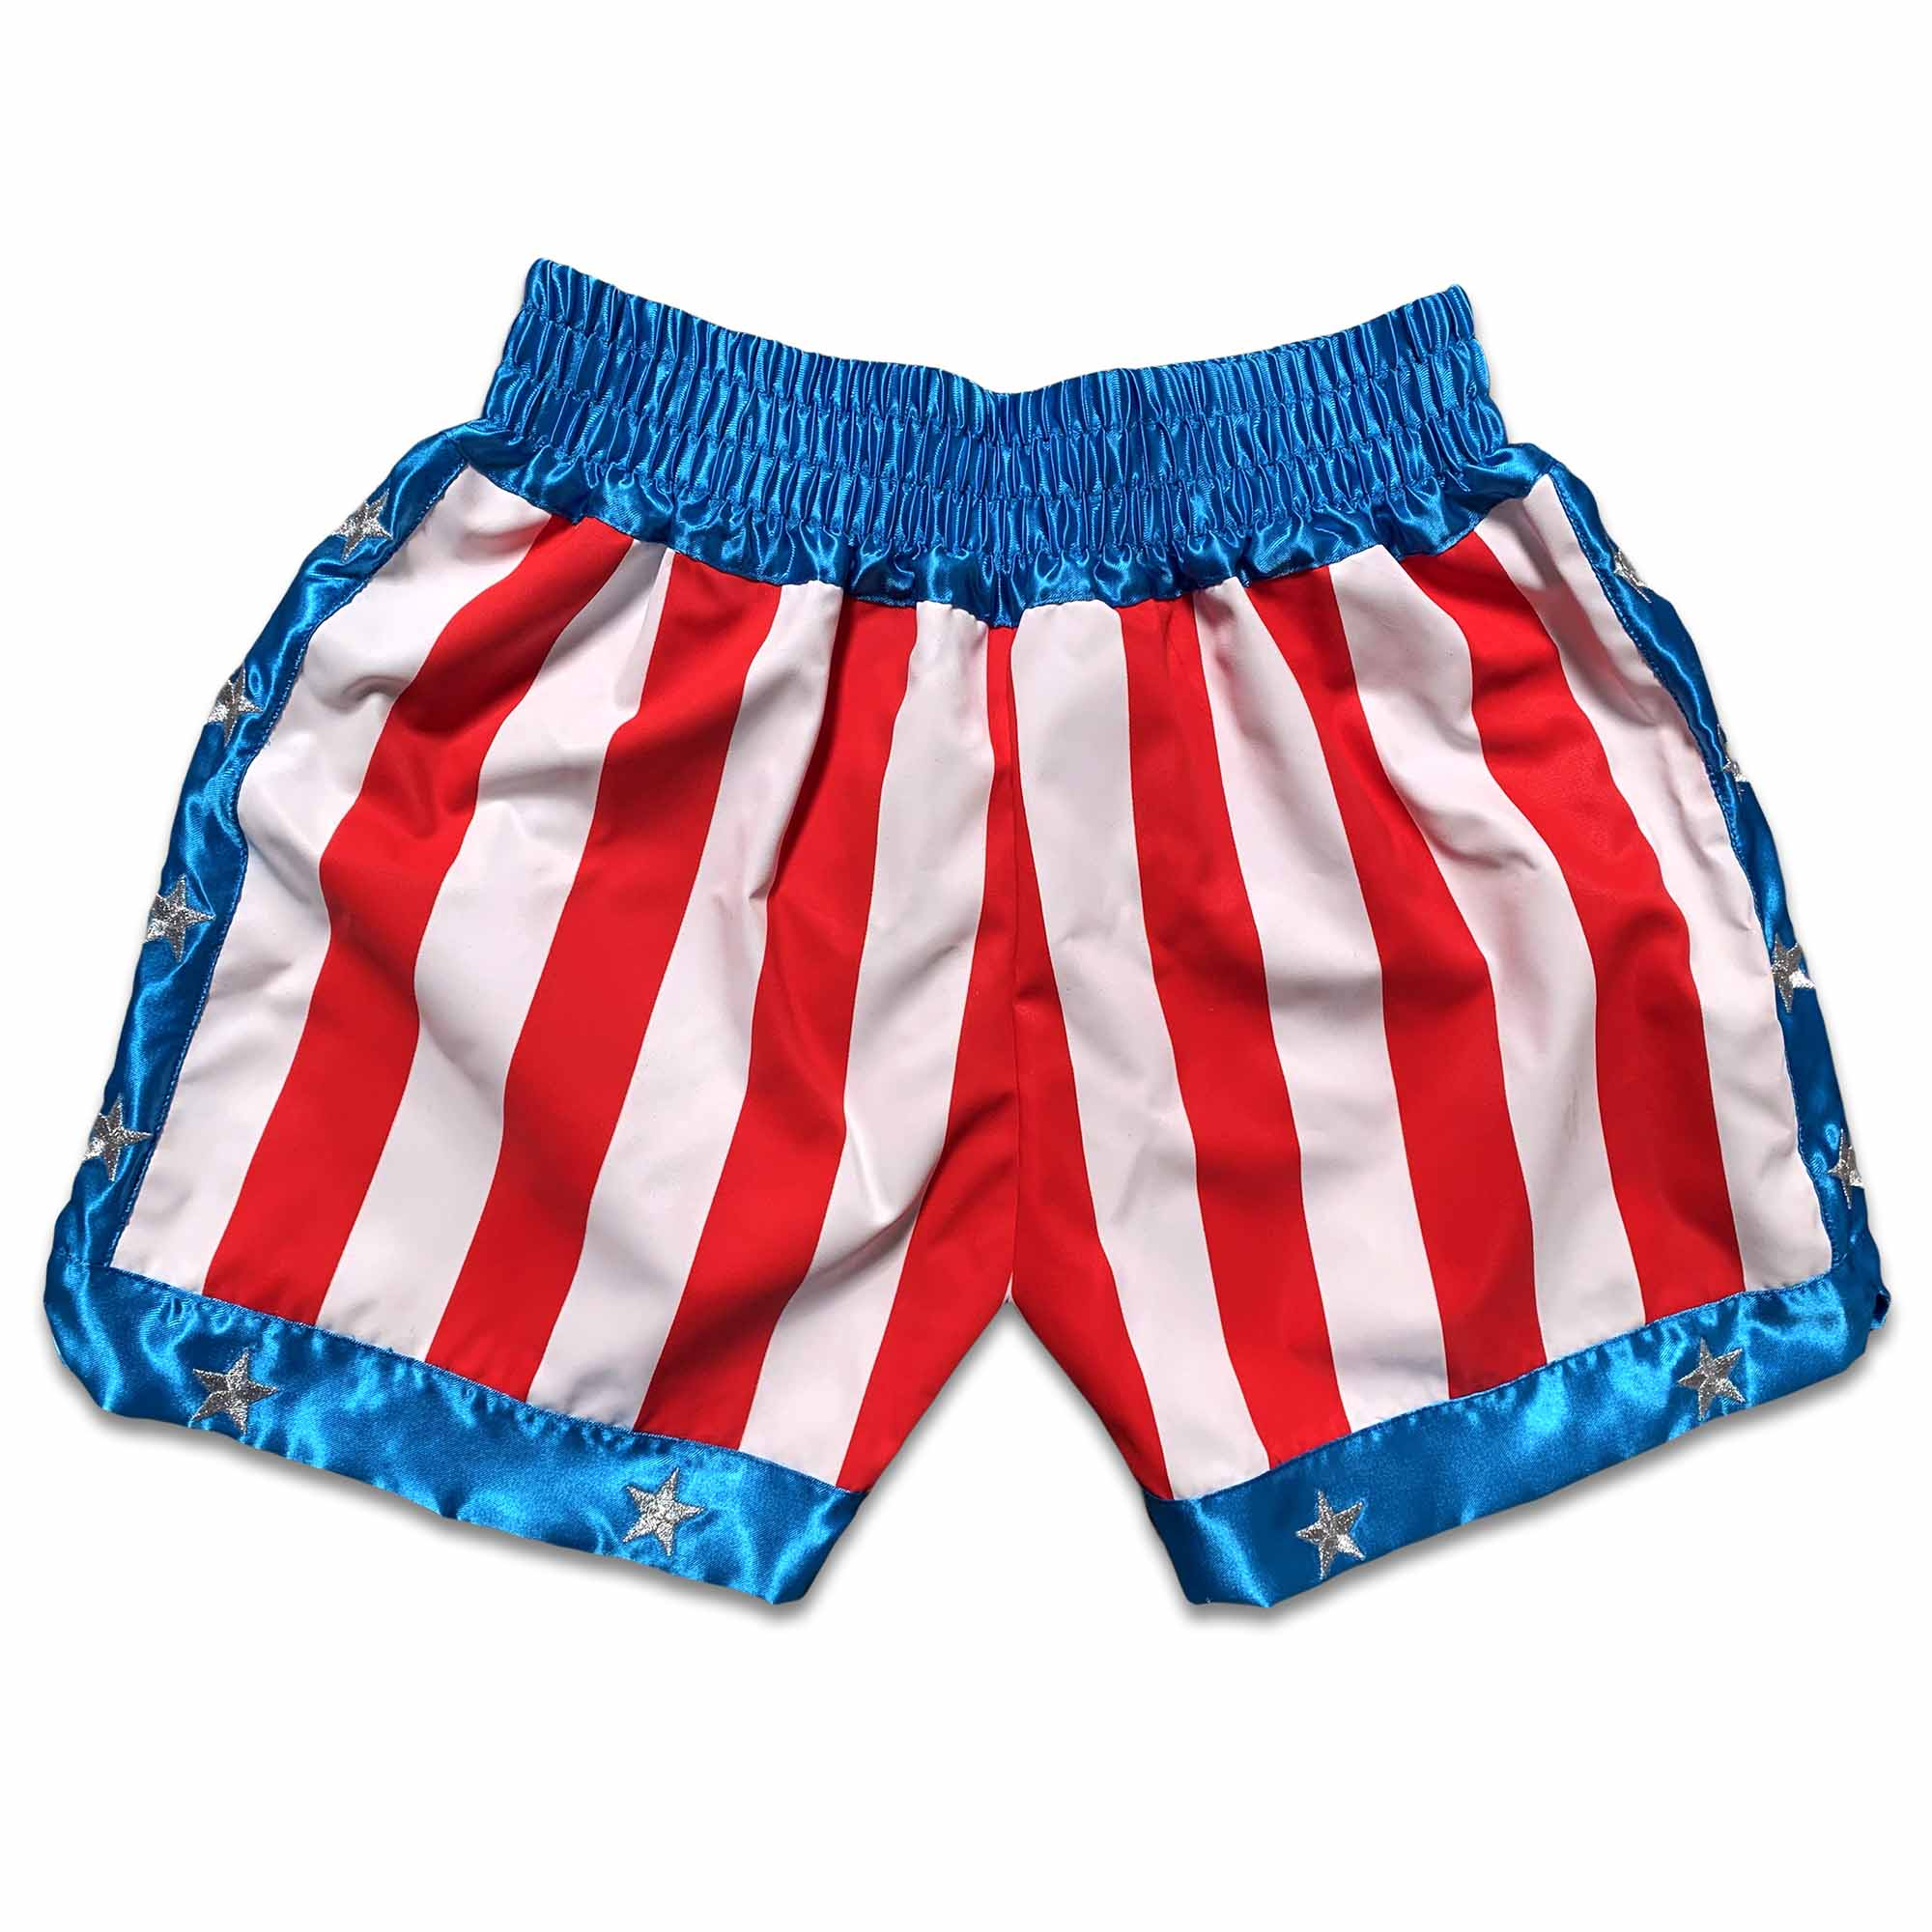 Rocky IV Replica Boxing Trunks